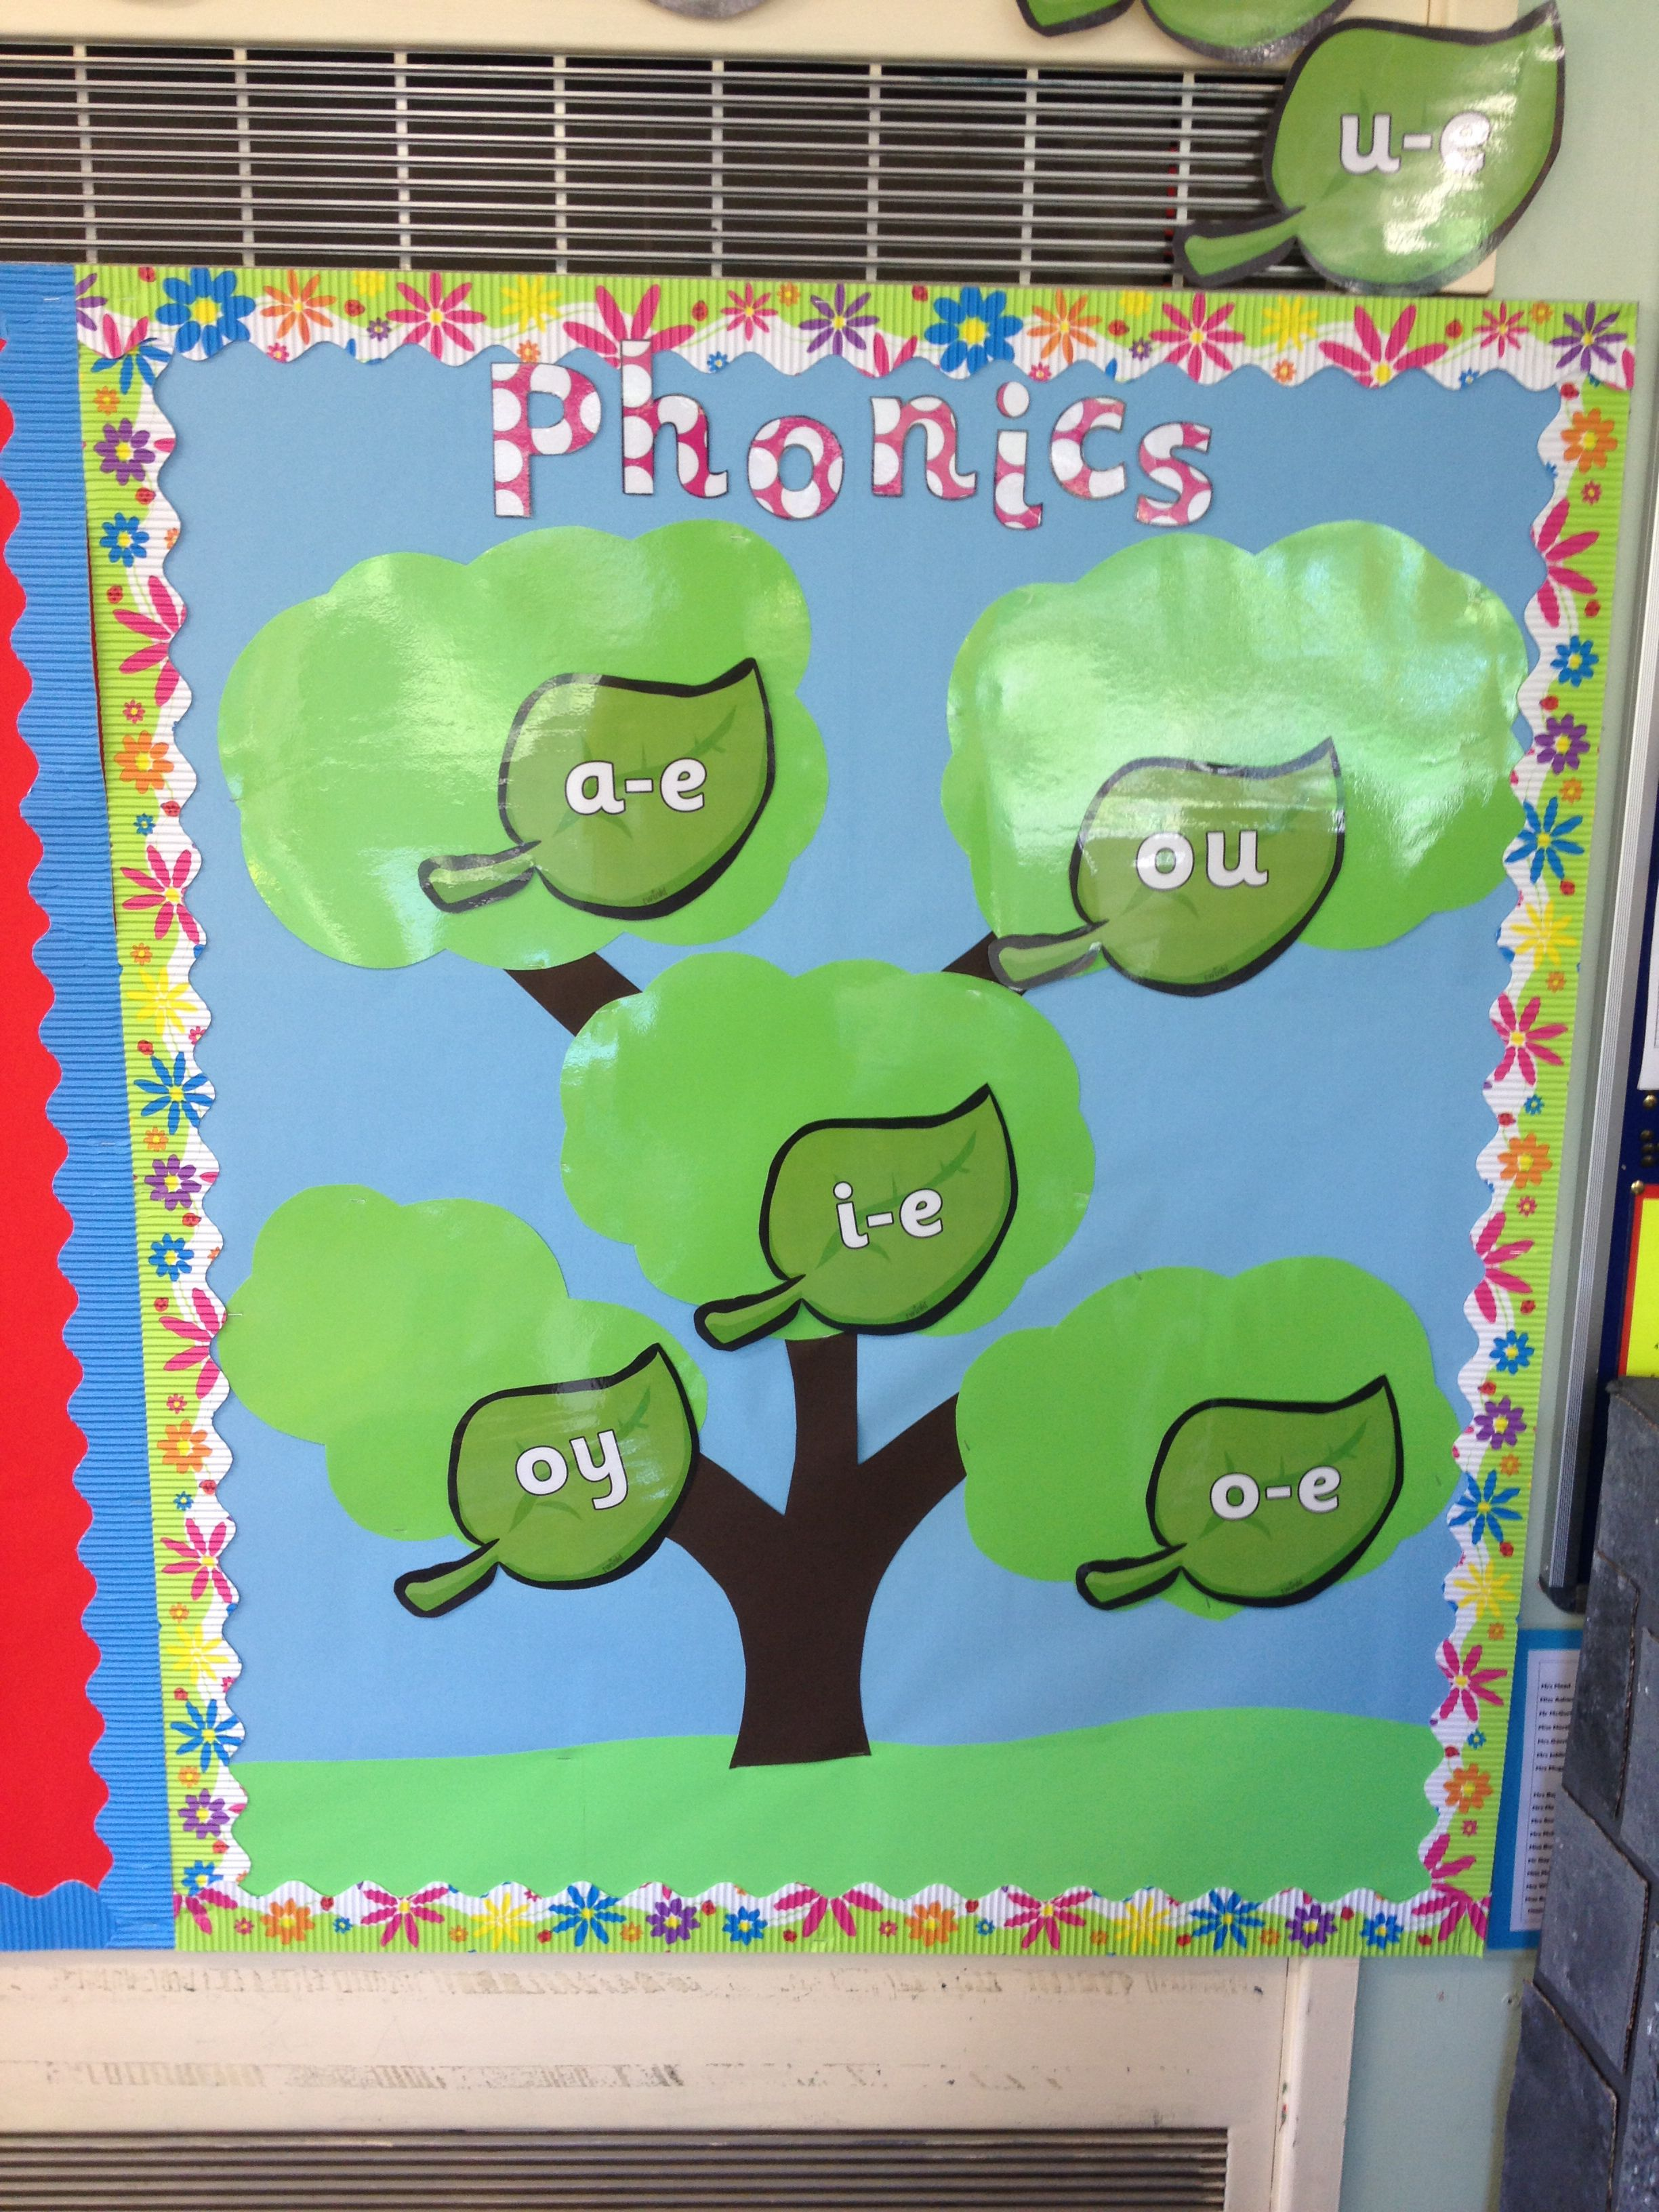 New Phonics Display Phase 5 Sounds Going To As Words As